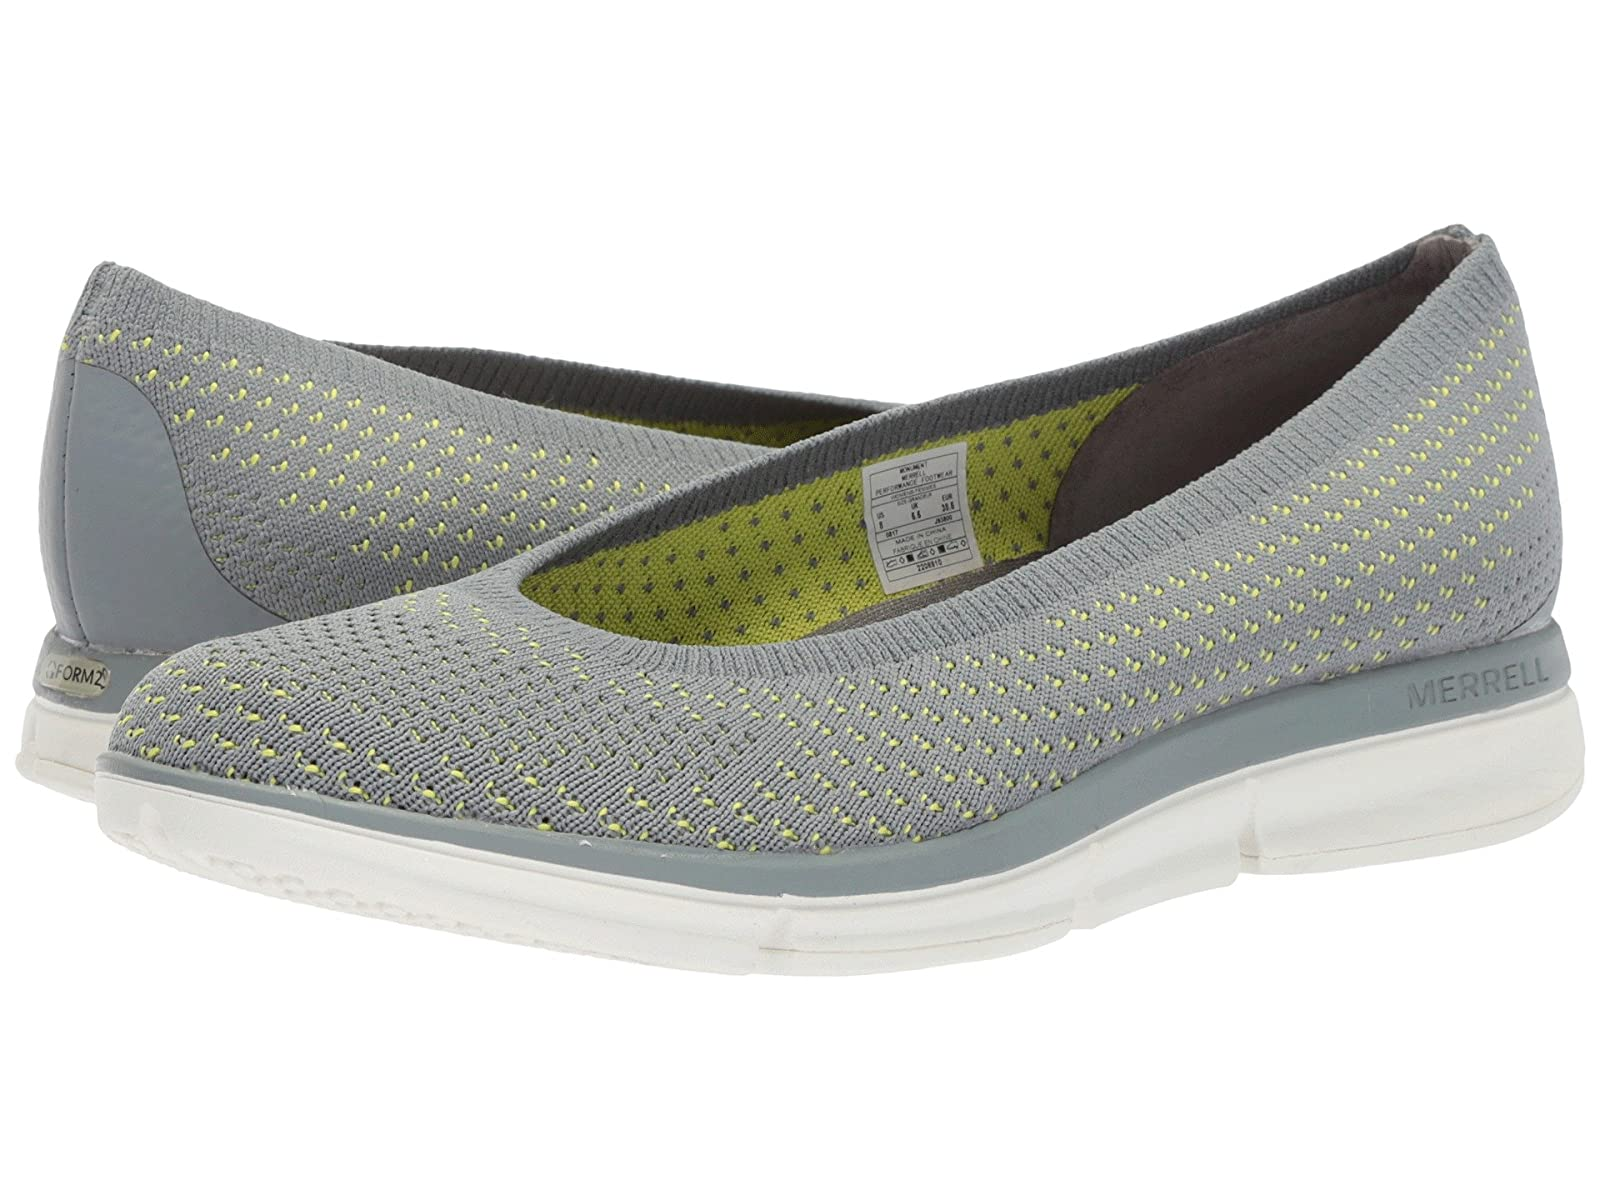 Merrell Zoe Sojourn Ballet Knit Q2Cheap and distinctive eye-catching shoes